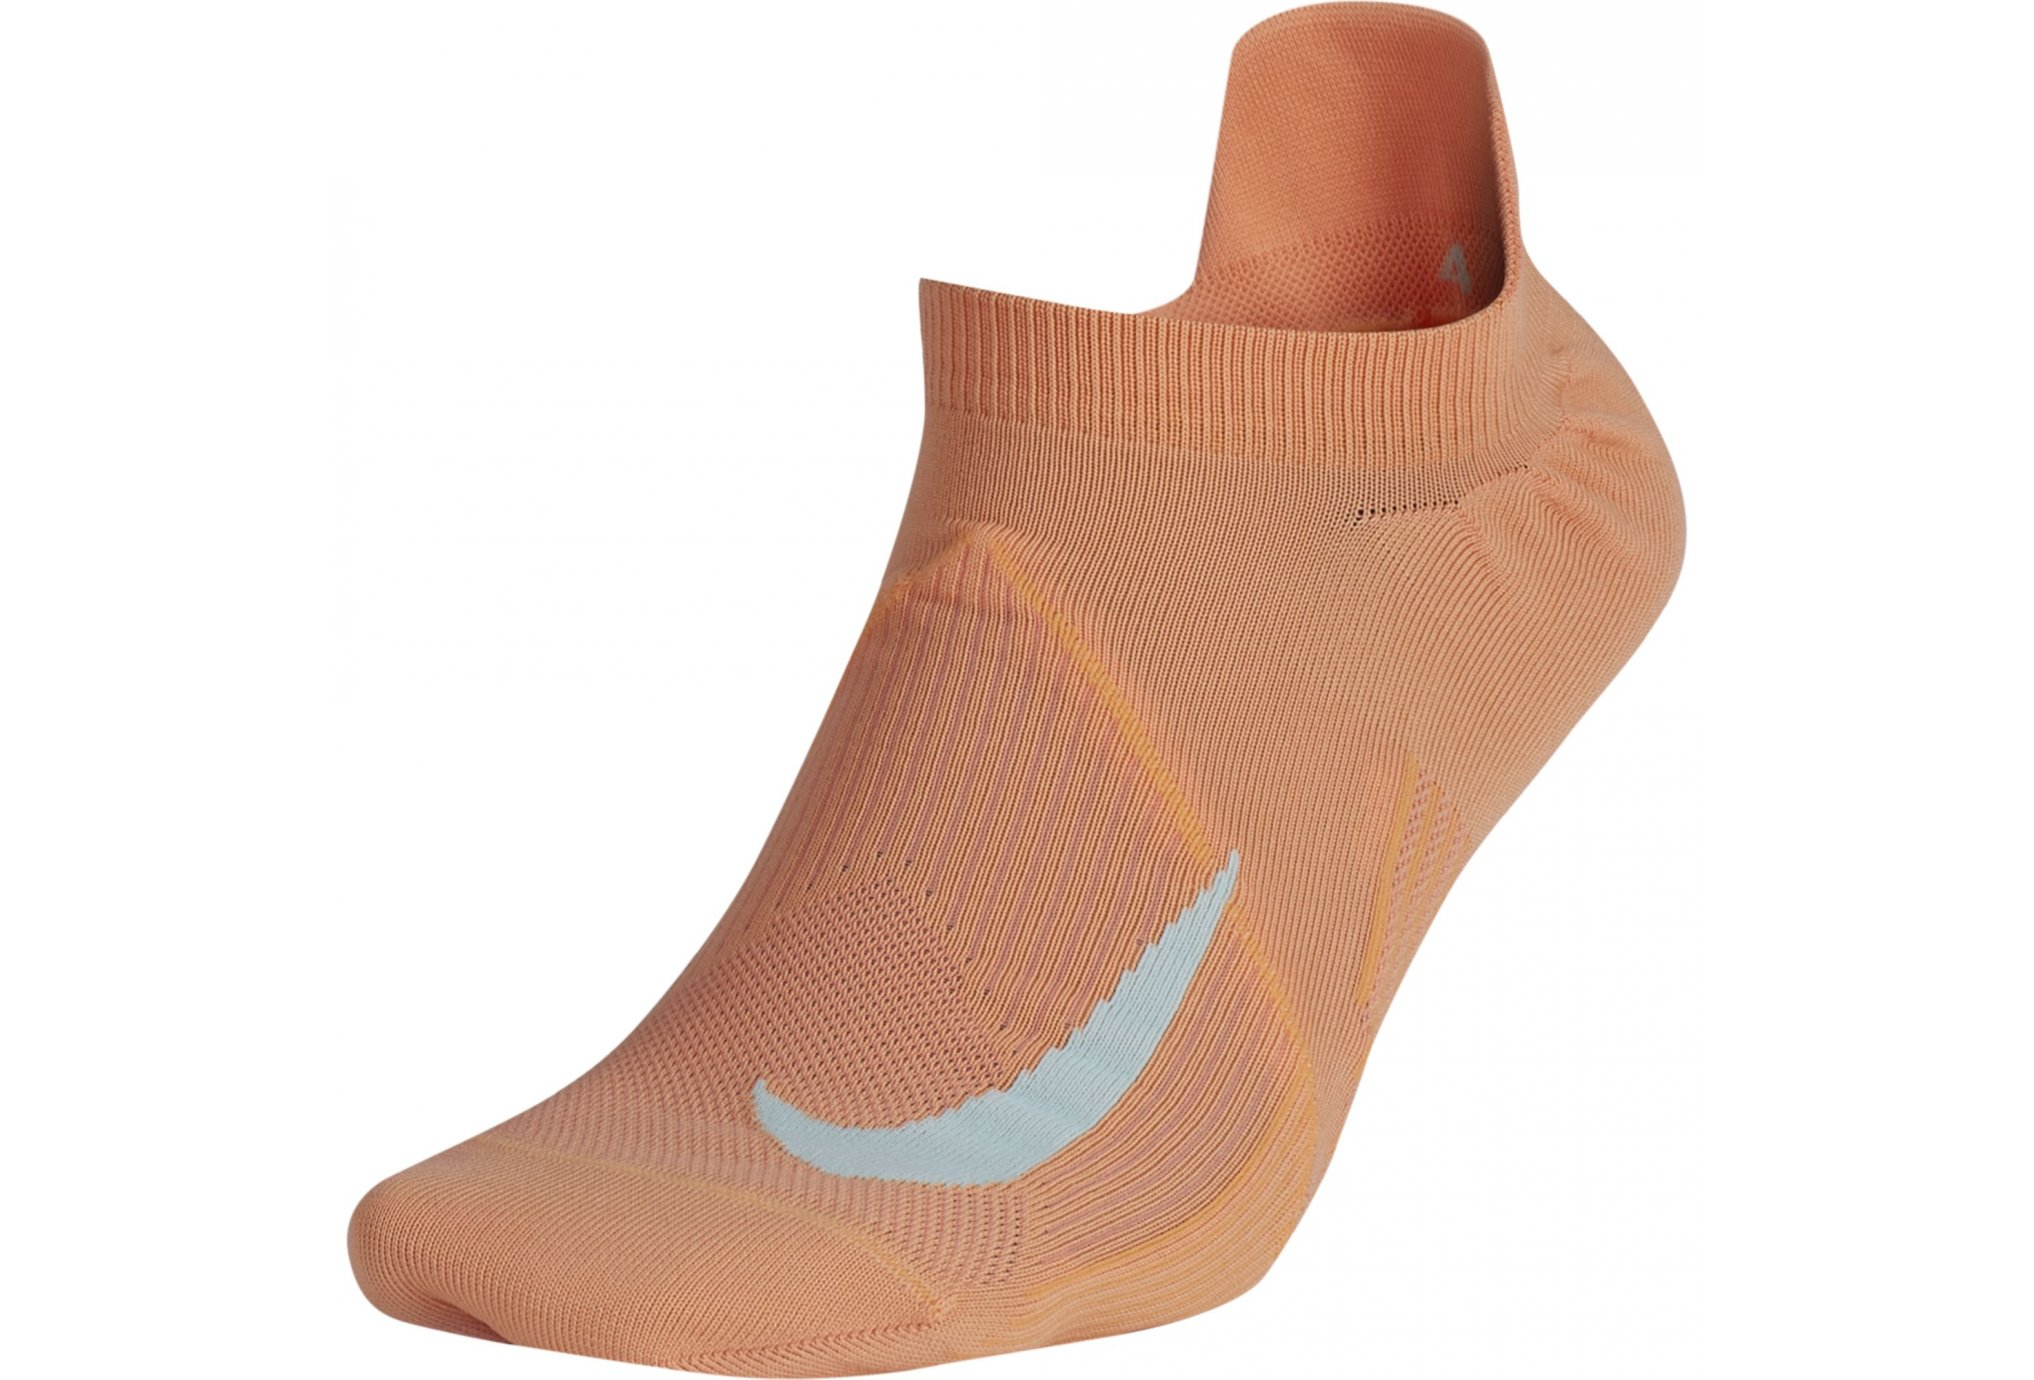 Nike Elite Lightweight No-Show Chaussettes